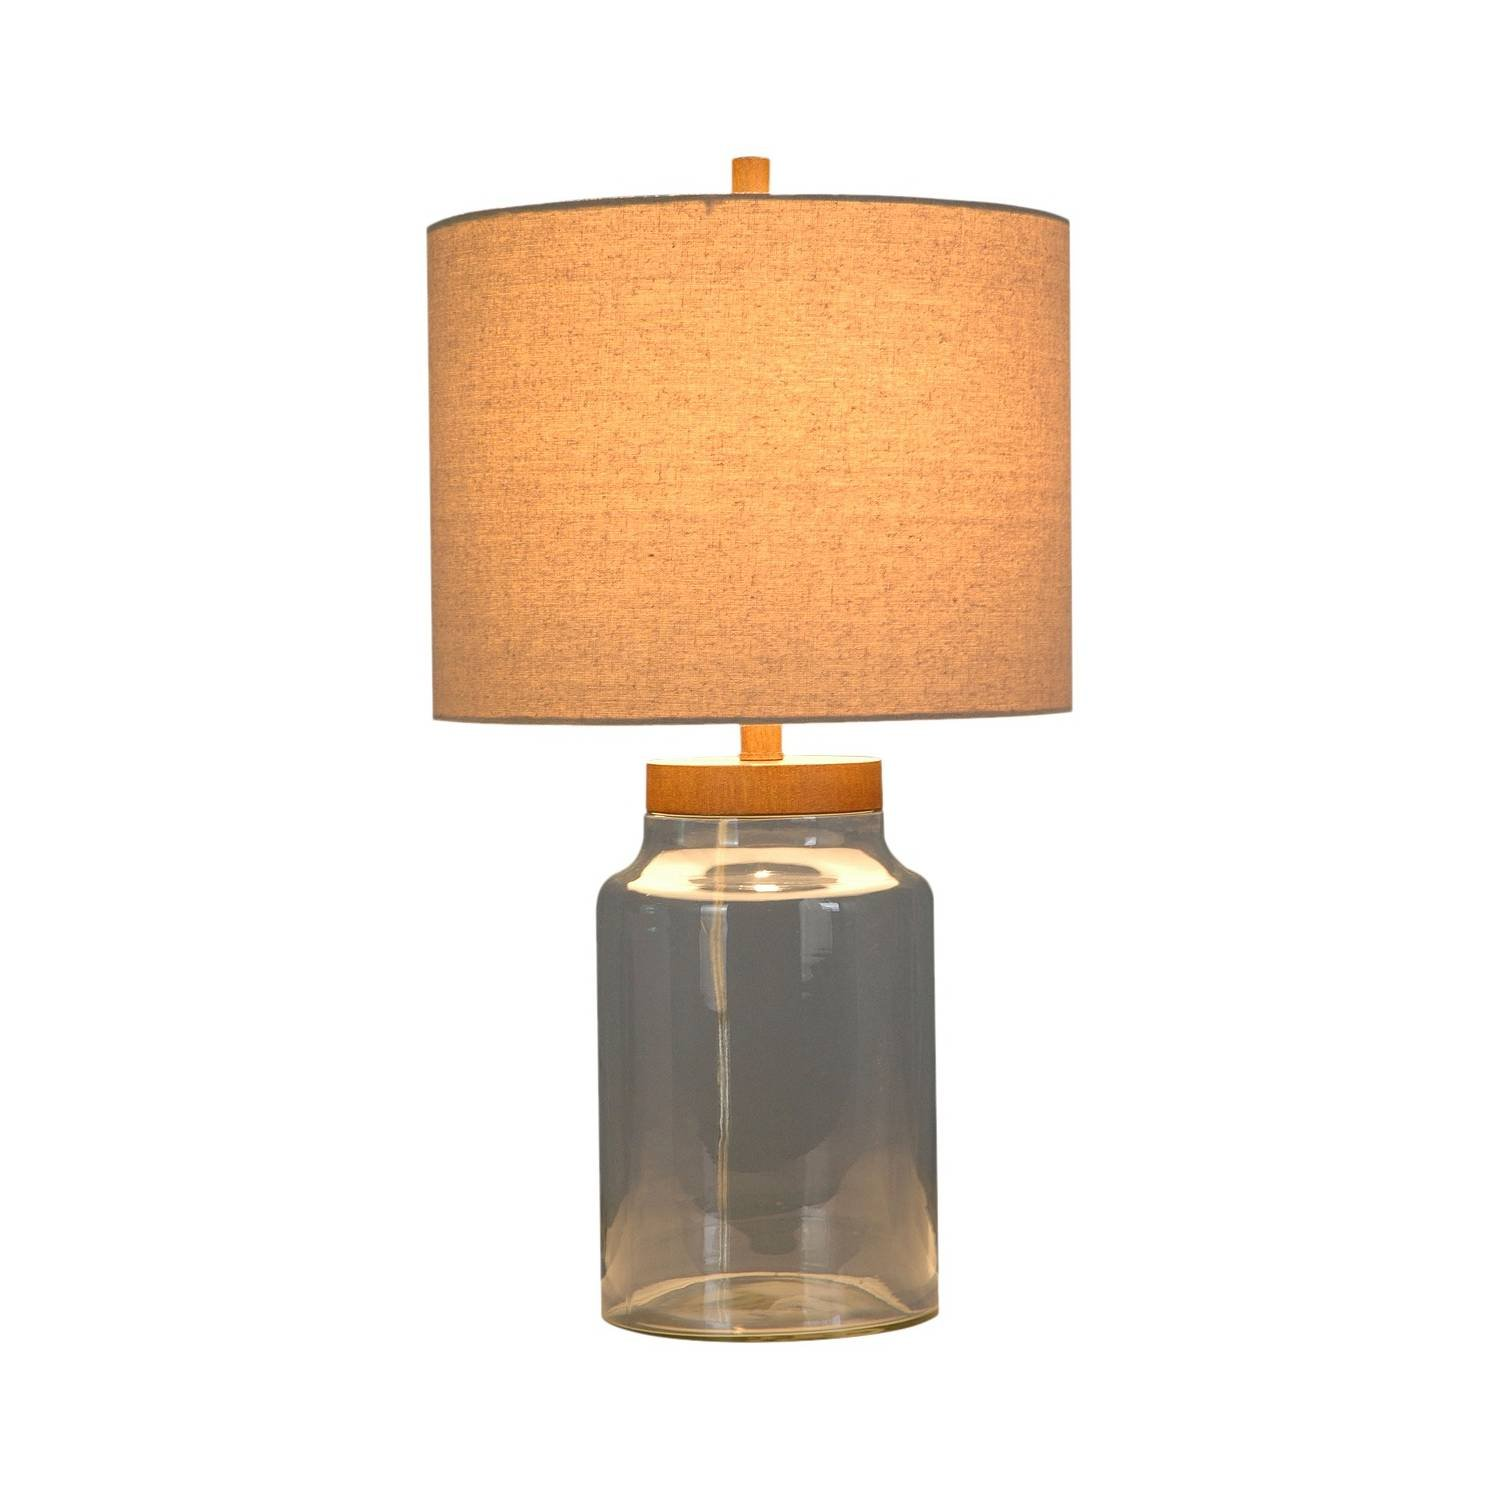 Wood & Glass Fillable 24'' x 13'' Table Lamp - Ambient Lighting Collection by Threshold